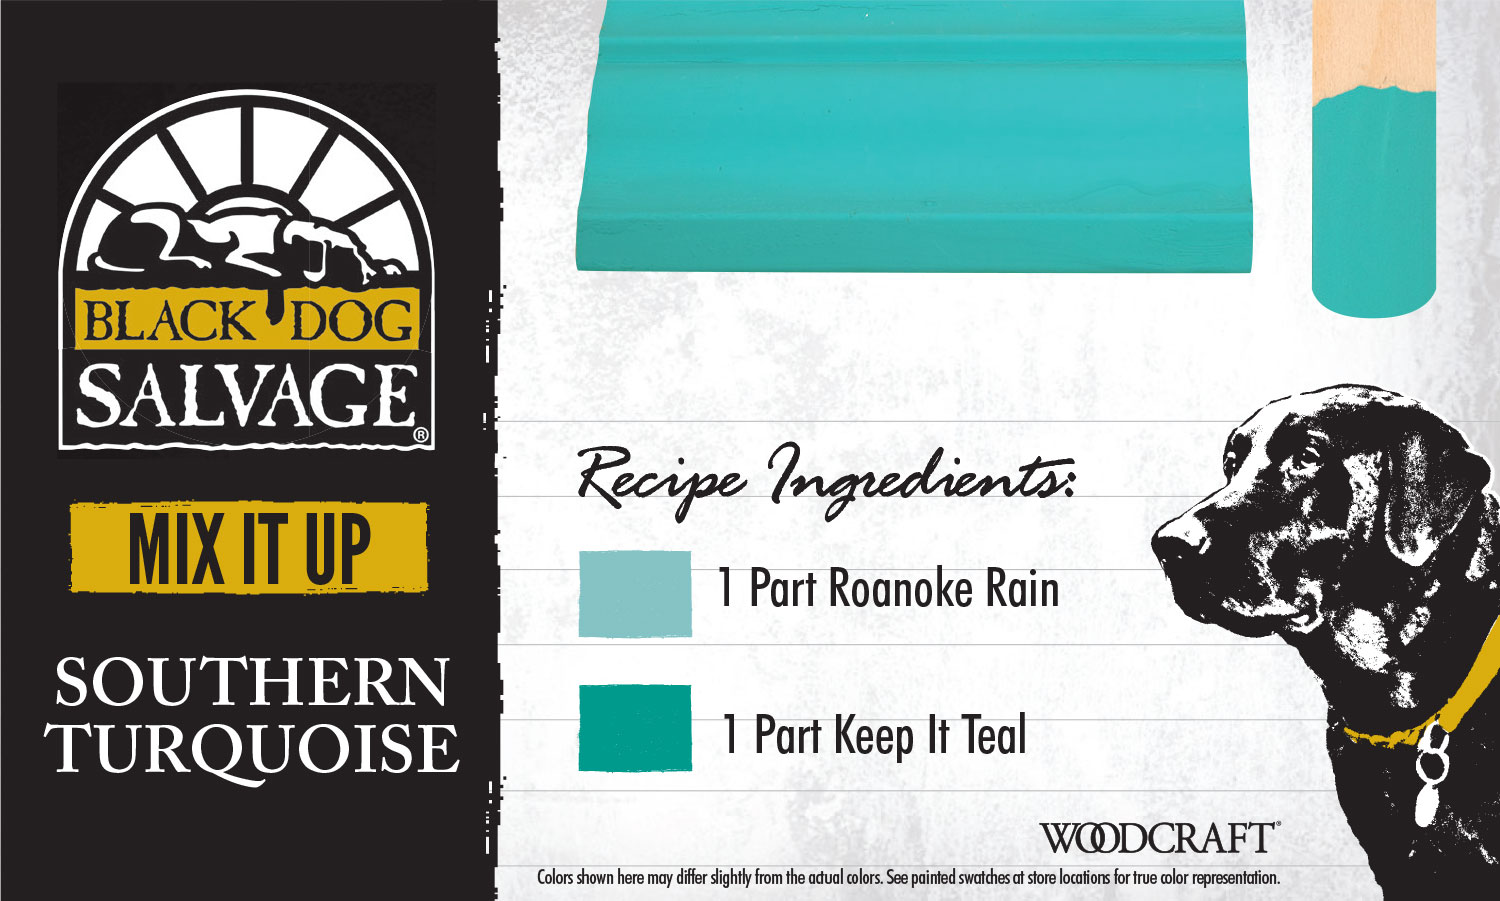 """""""Southern Turquoise"""" is made from 1 Part """"Roanoke Rain"""" and 1 Part """"Keep It Teal"""""""